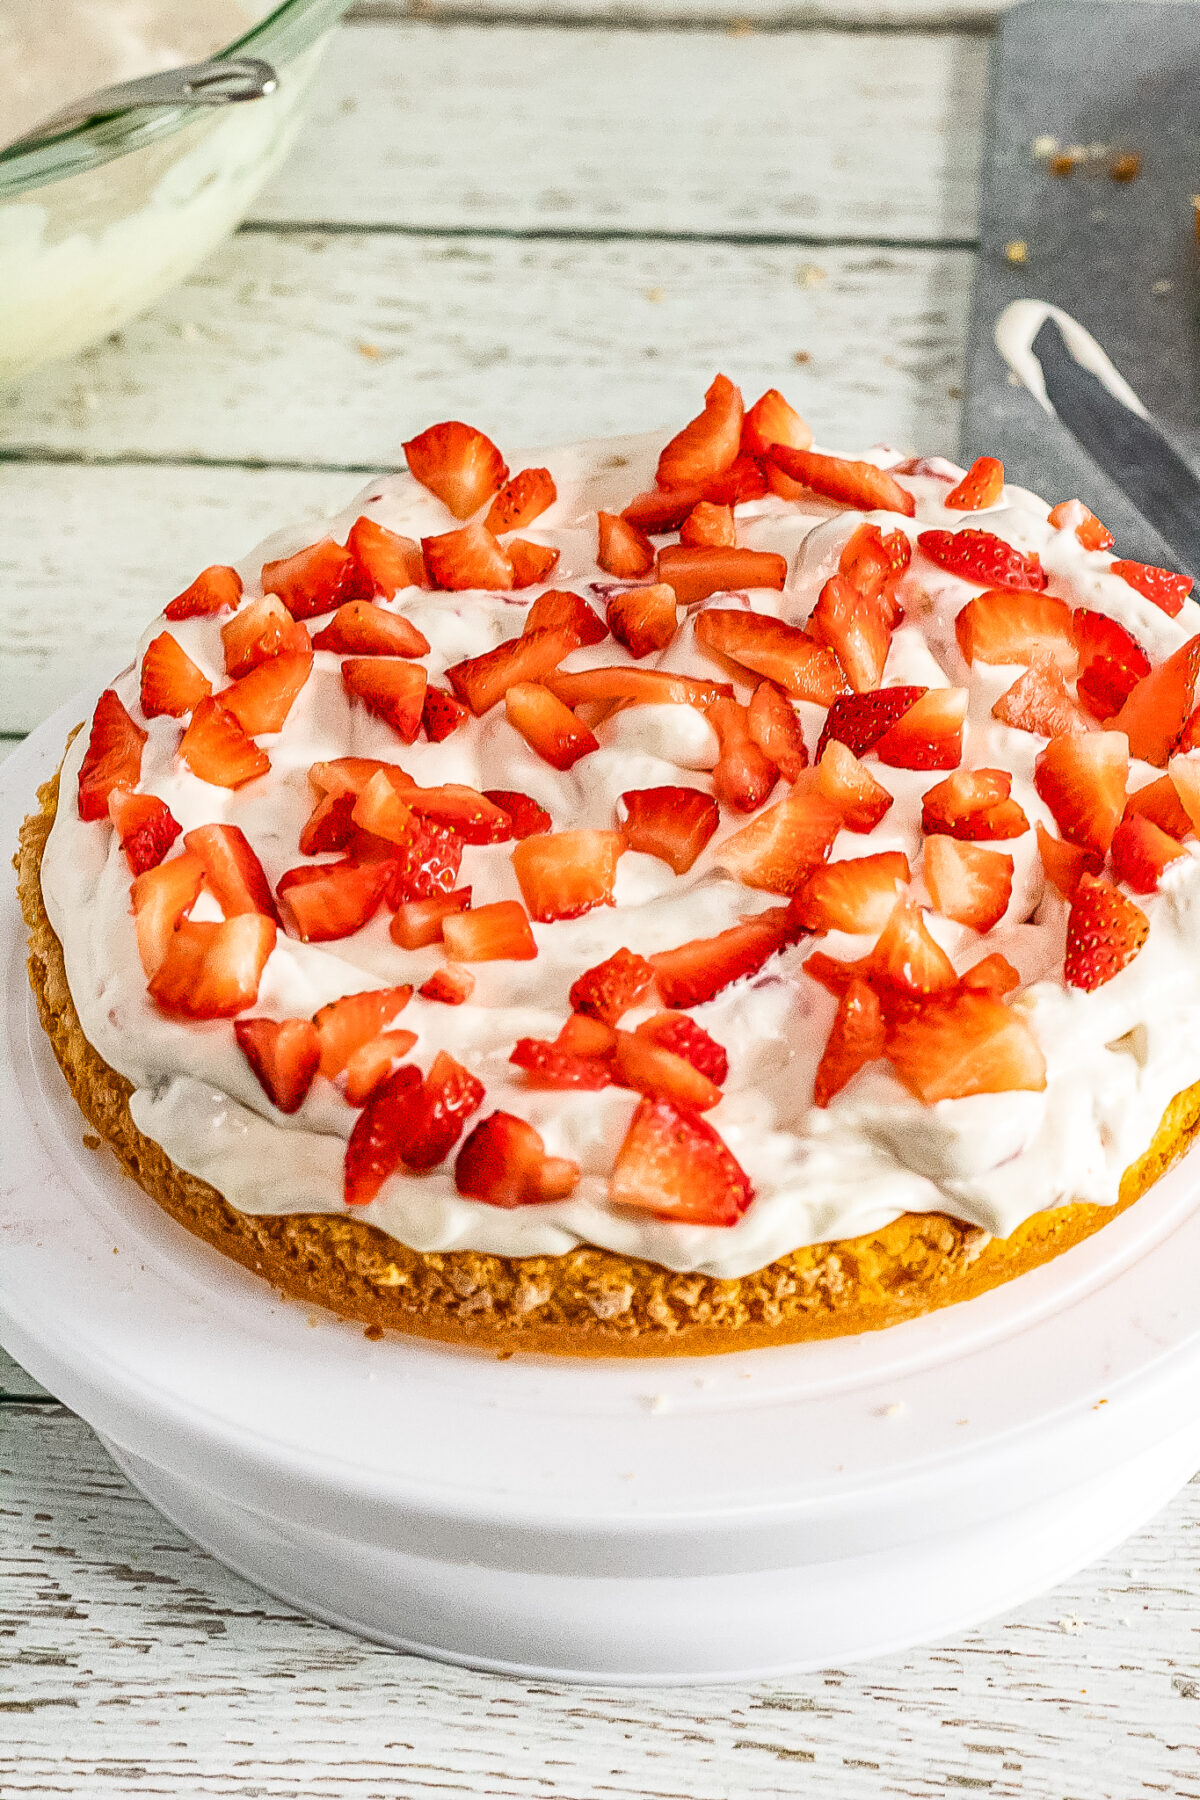 Cake topped with whipping cream and strawberries